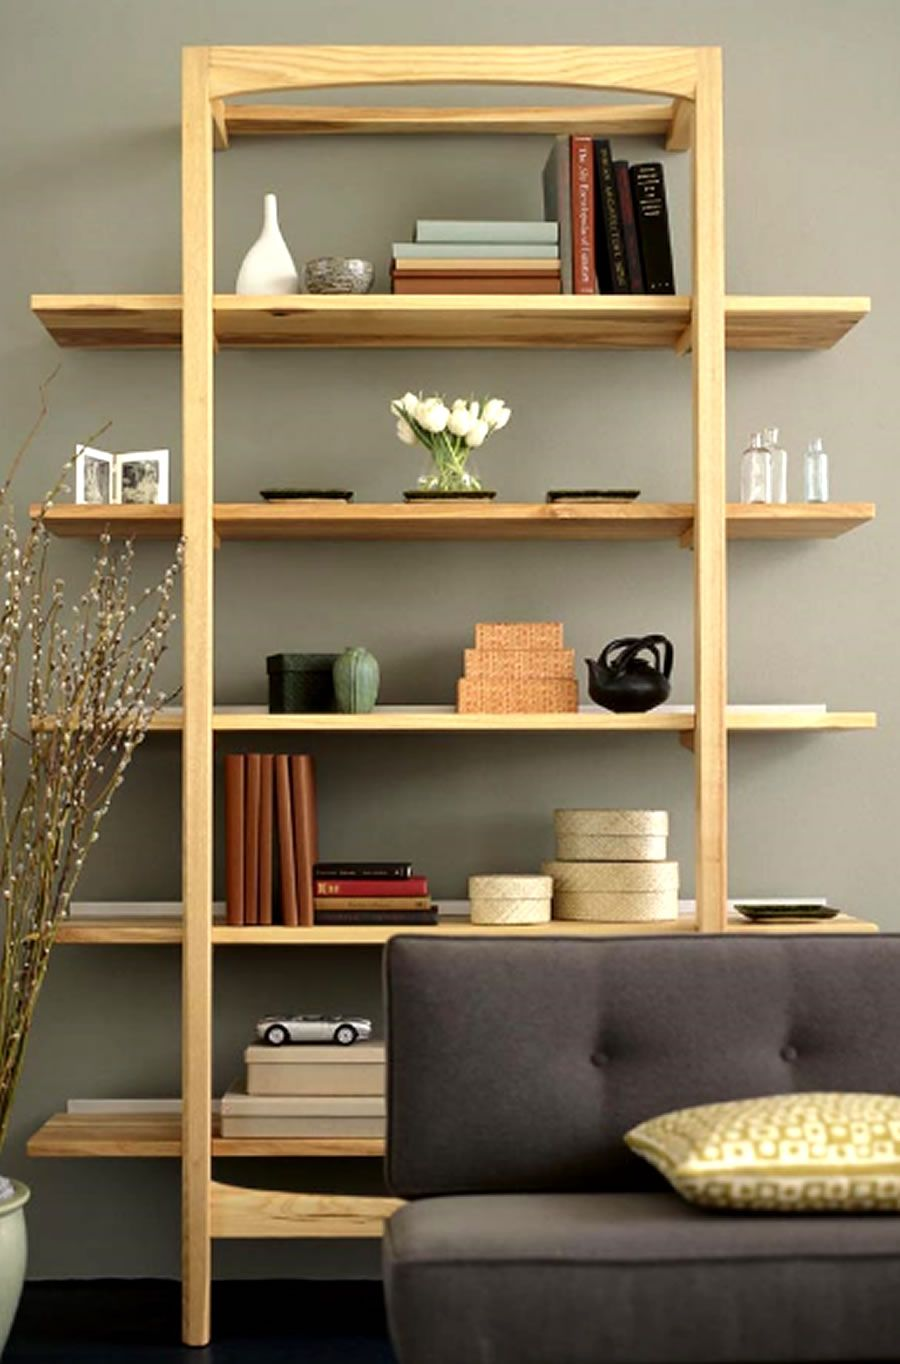 Office shelves modern luxury office shelves storage furniture design by city joinery - Furniture design modern ...